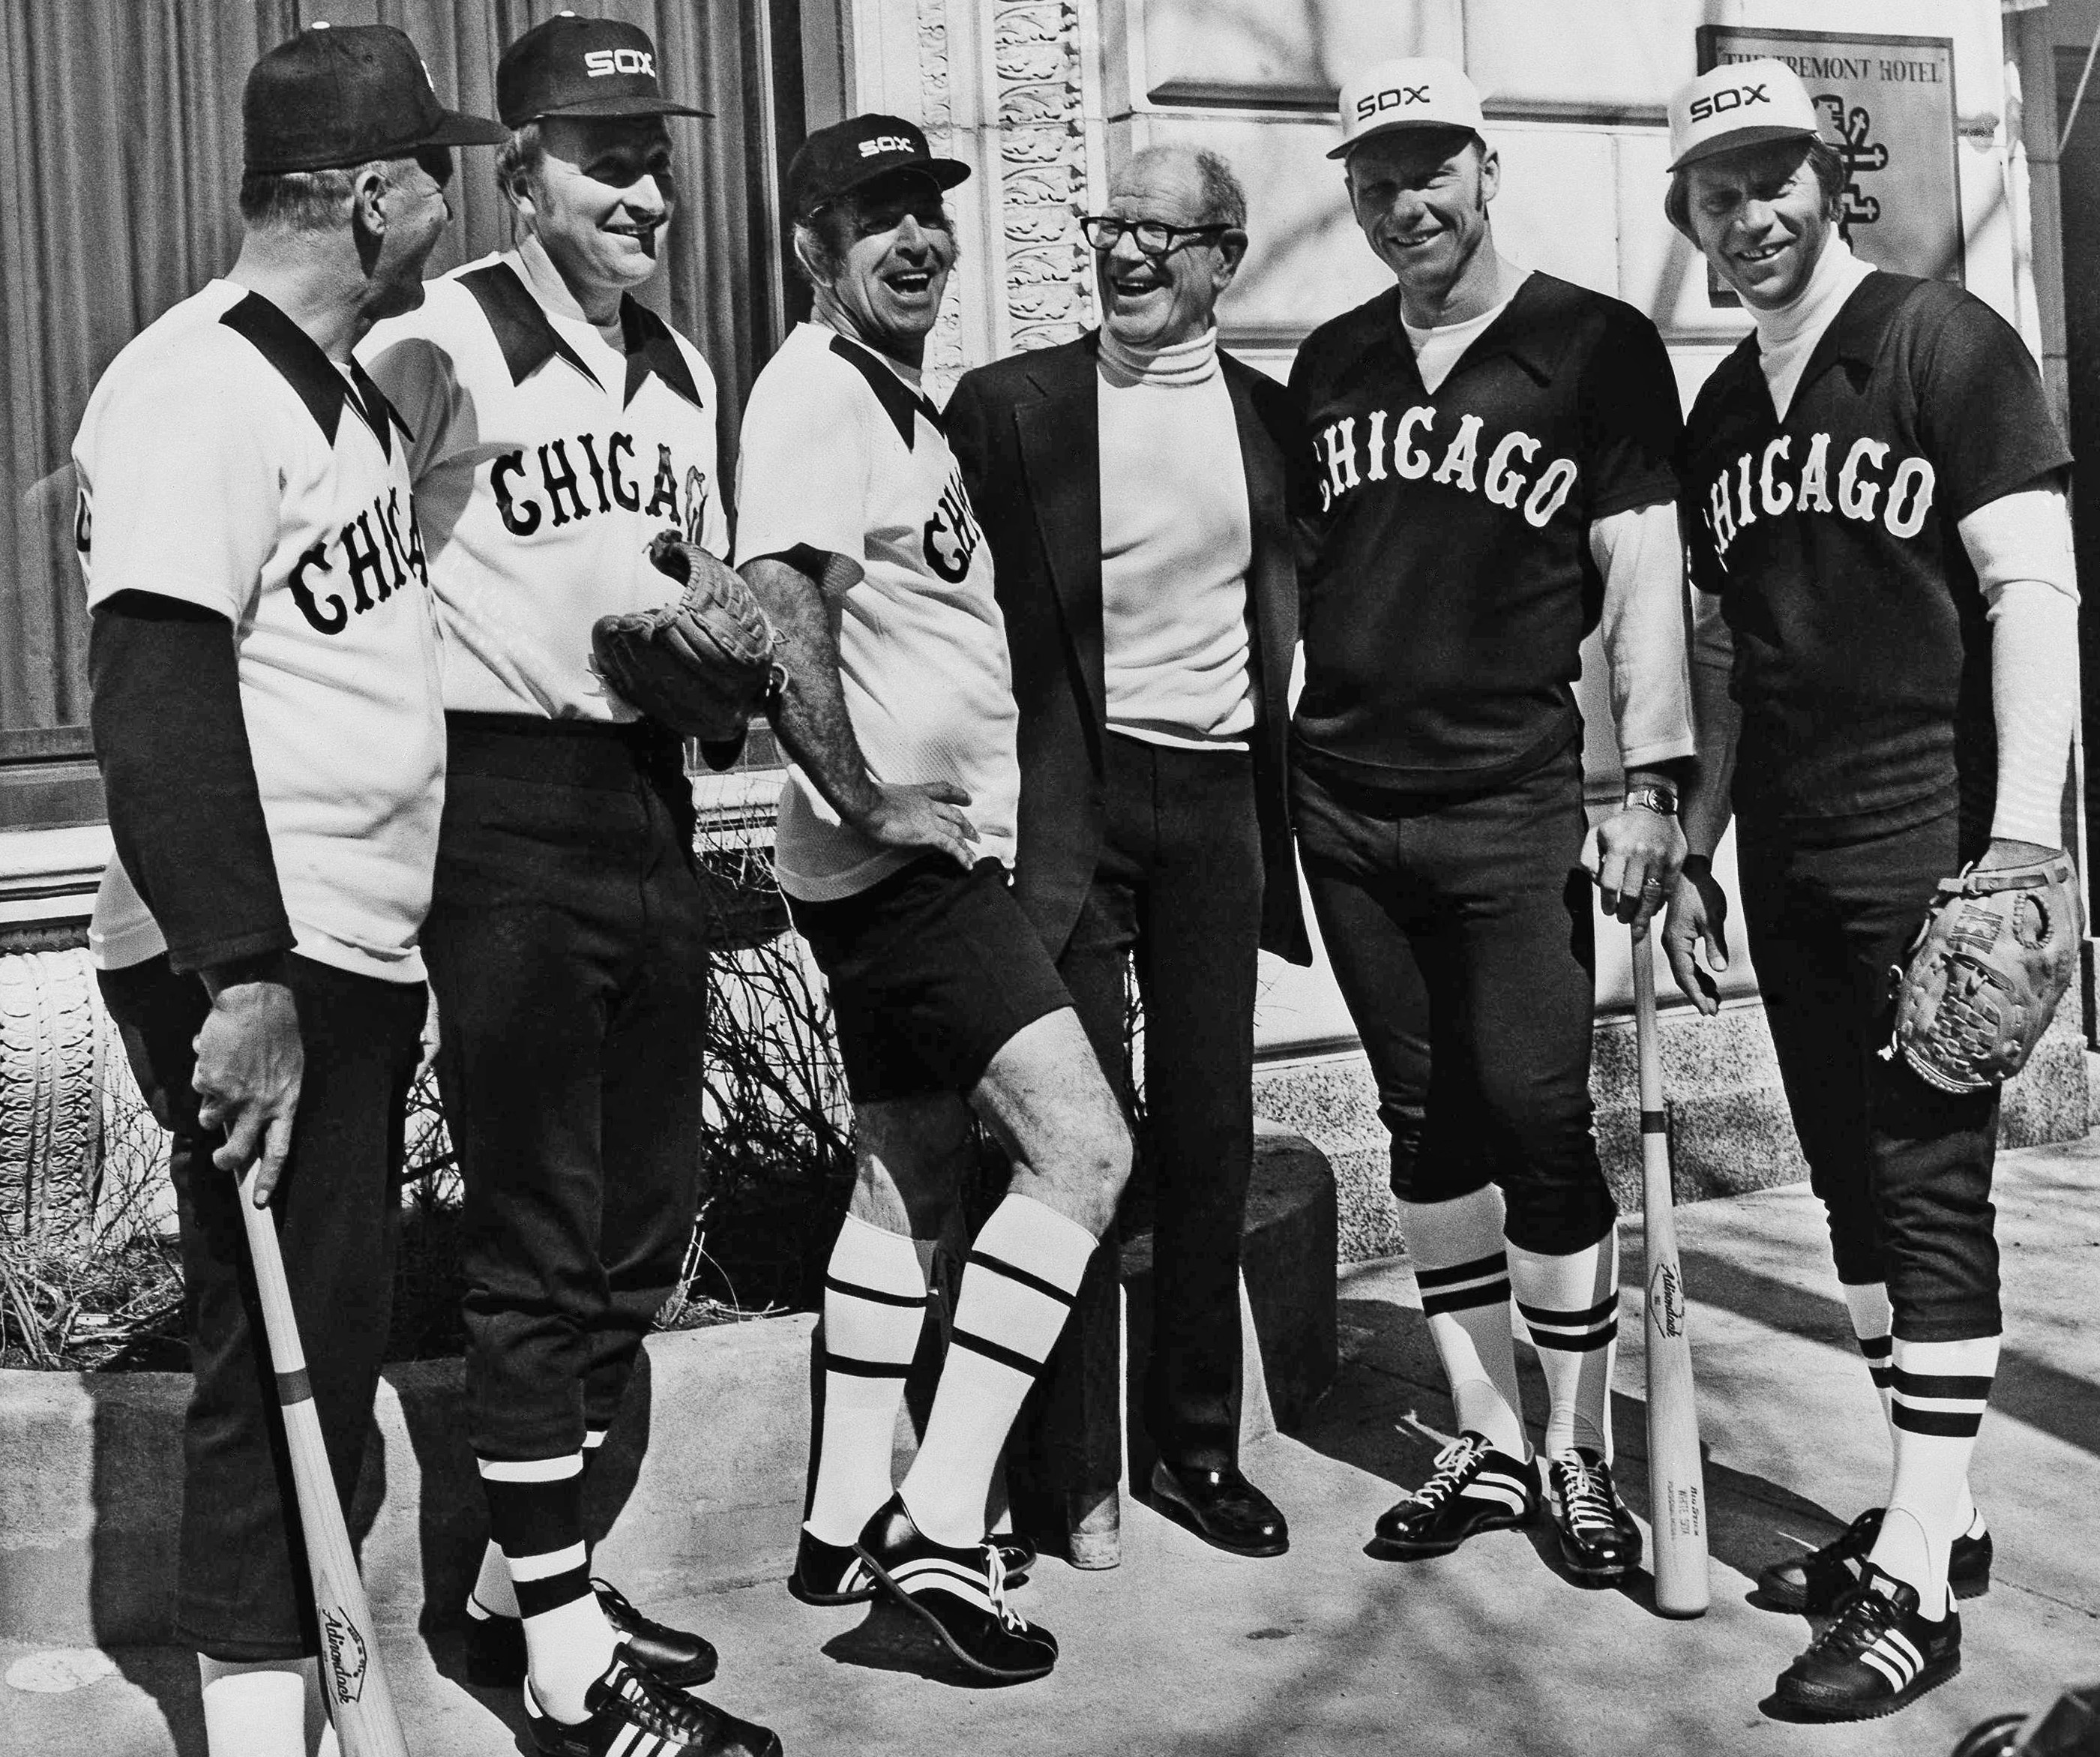 differently d17d7 bbb61 White Sox, Short Pants: Chicago's Infamous Uniforms Turn 38 ...